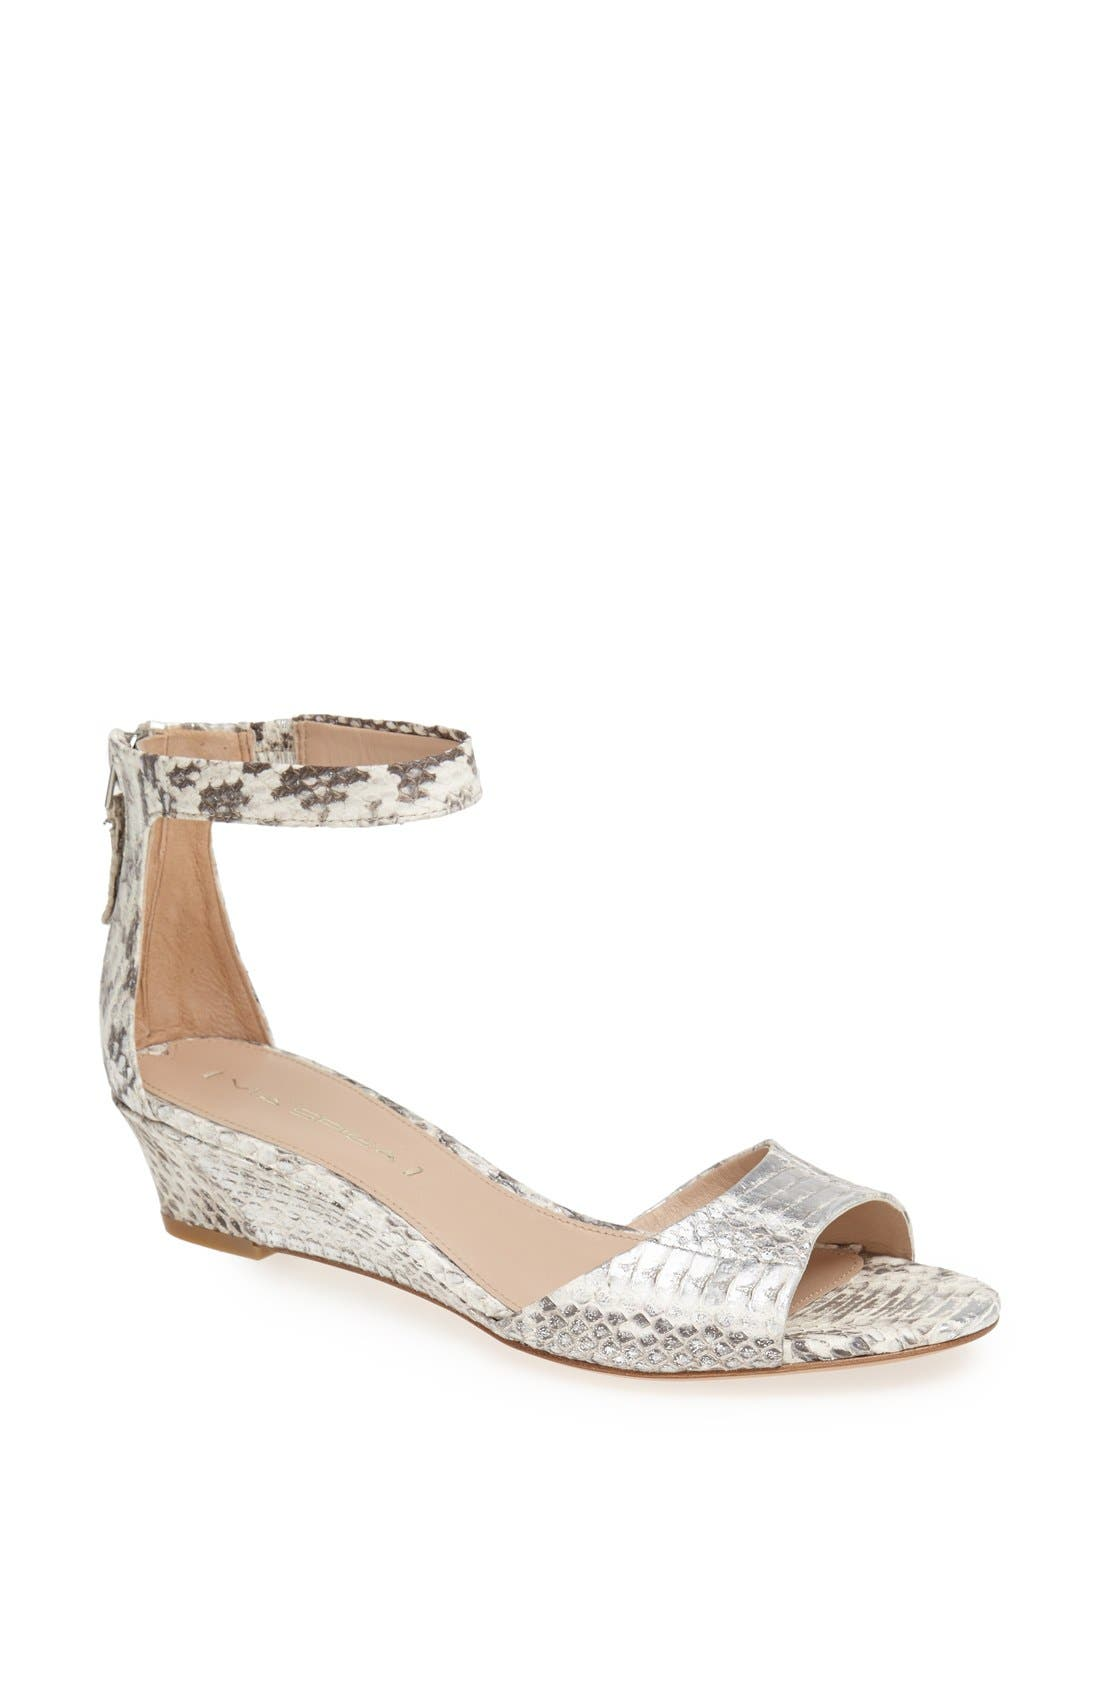 Alternate Image 1 Selected - Via Spiga 'Terrilyn' Wedge Sandal